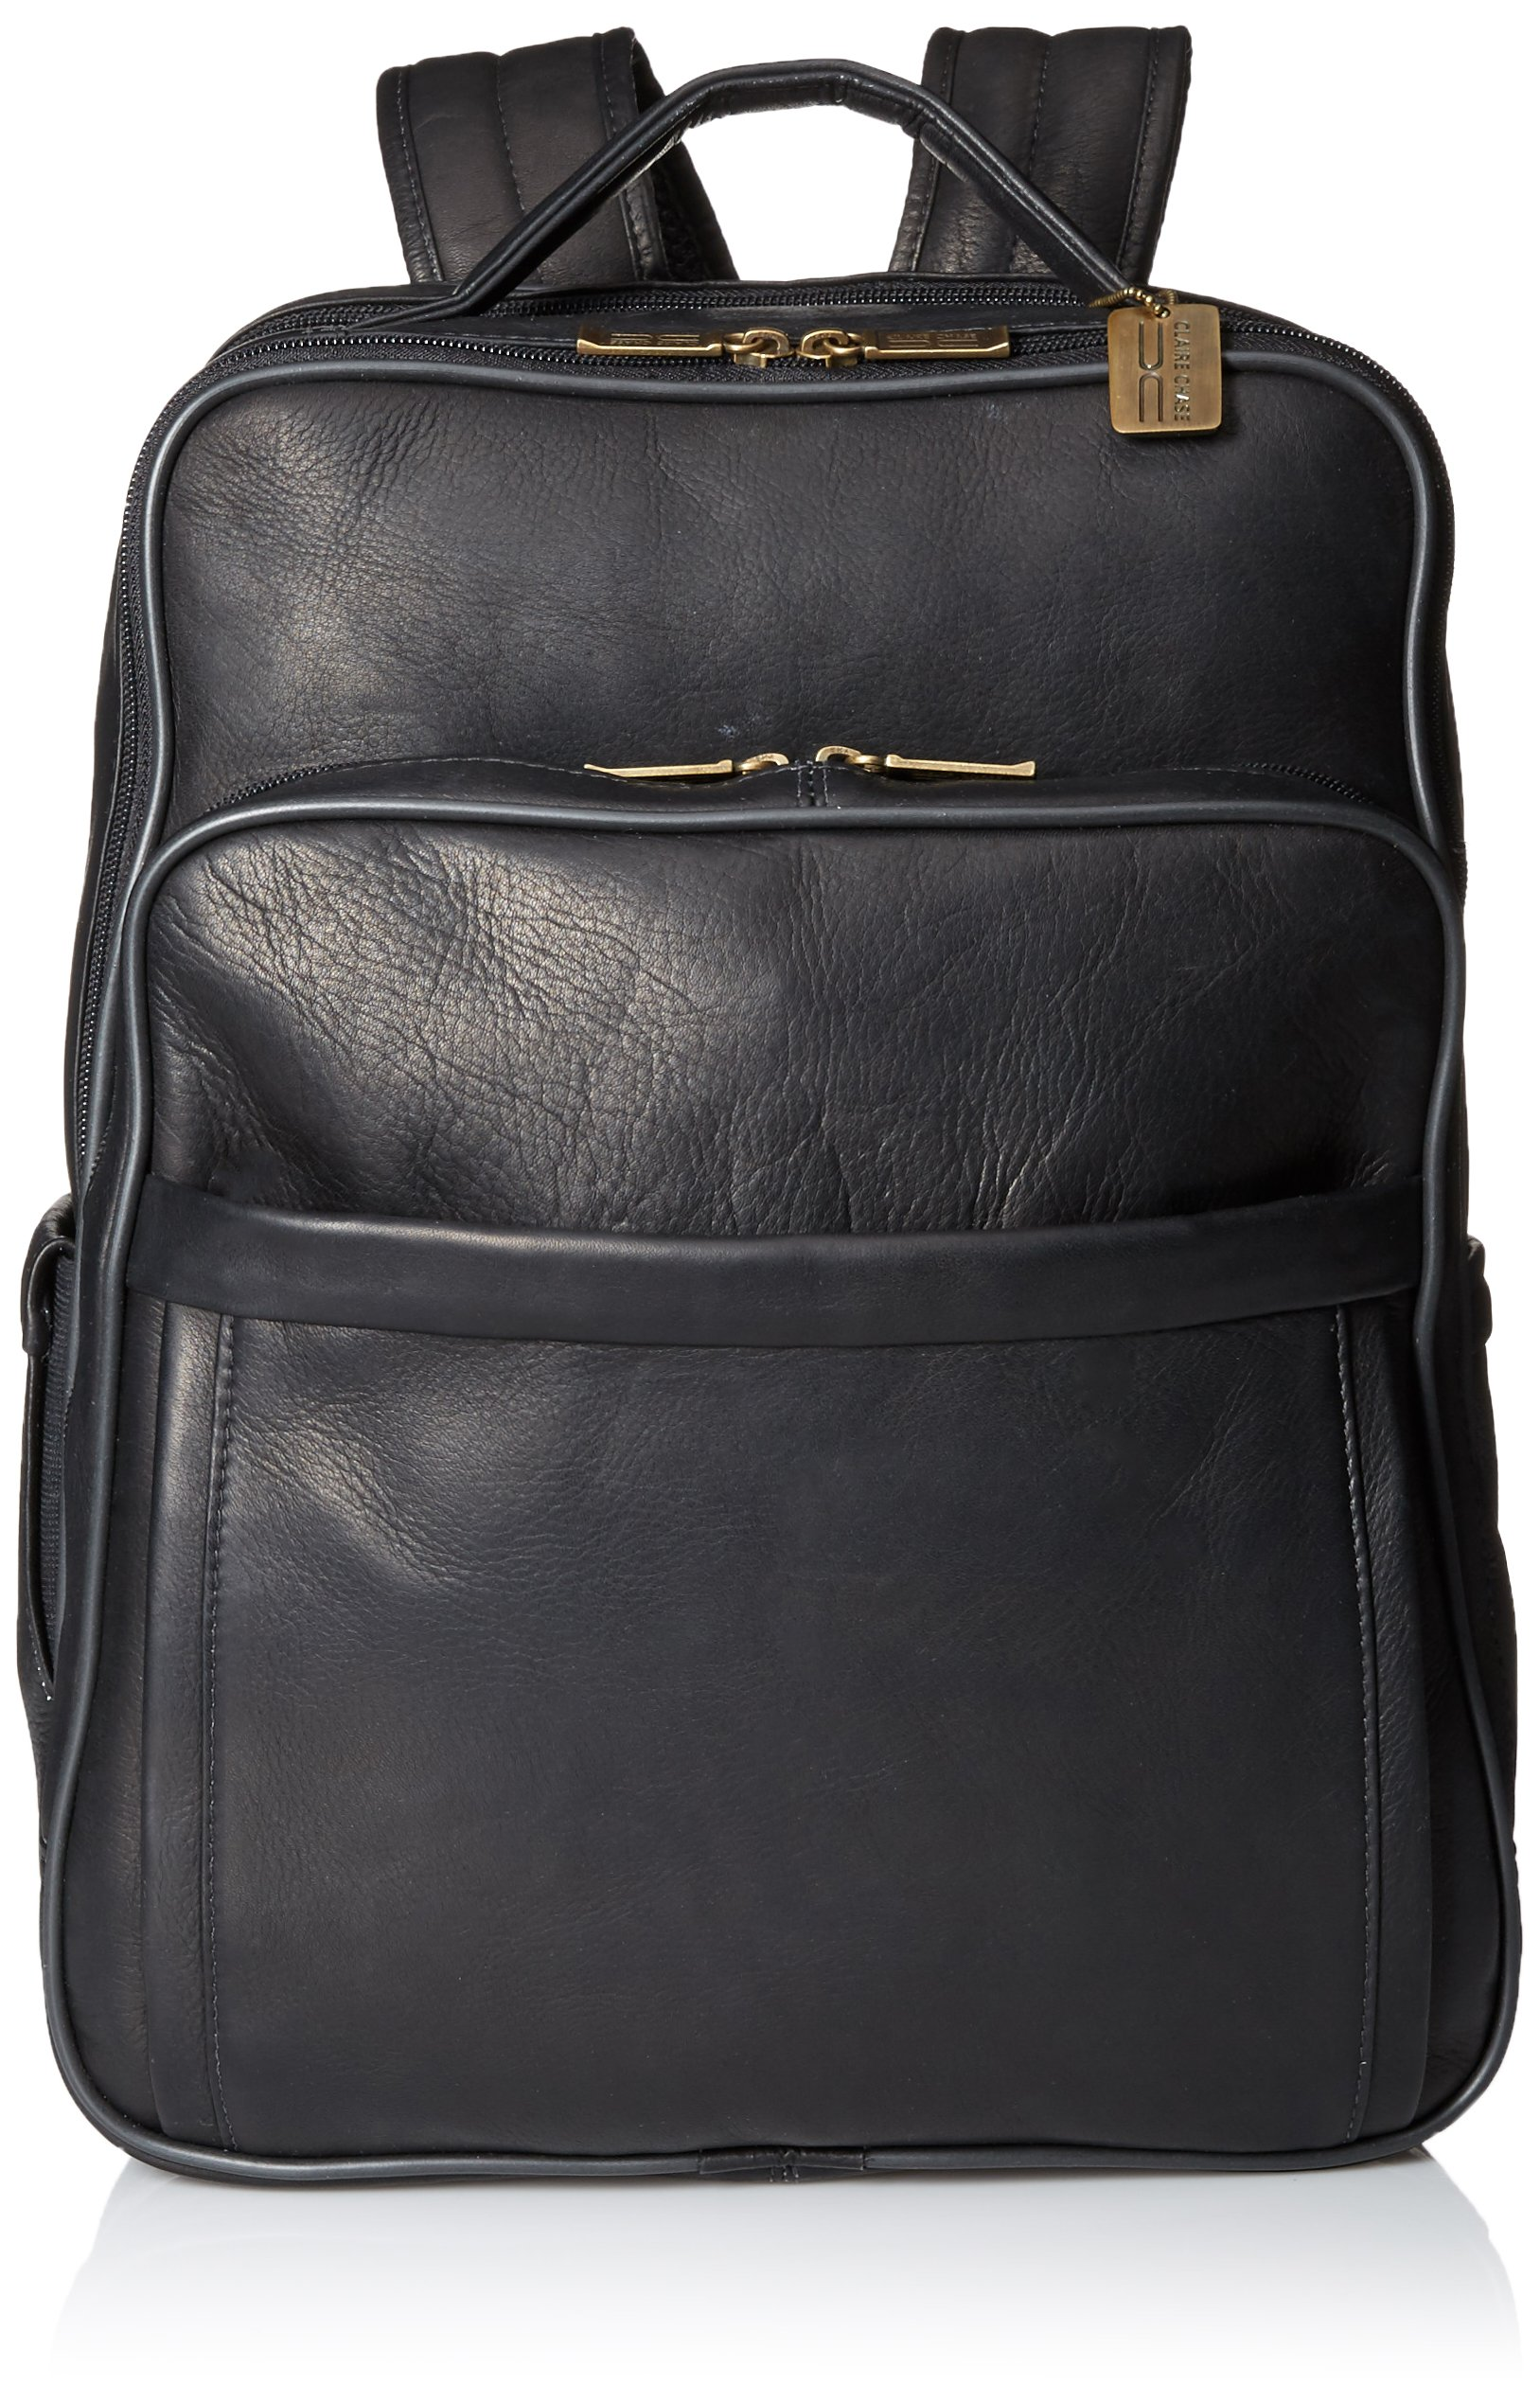 Claire Chase Tunica Backpack, Black